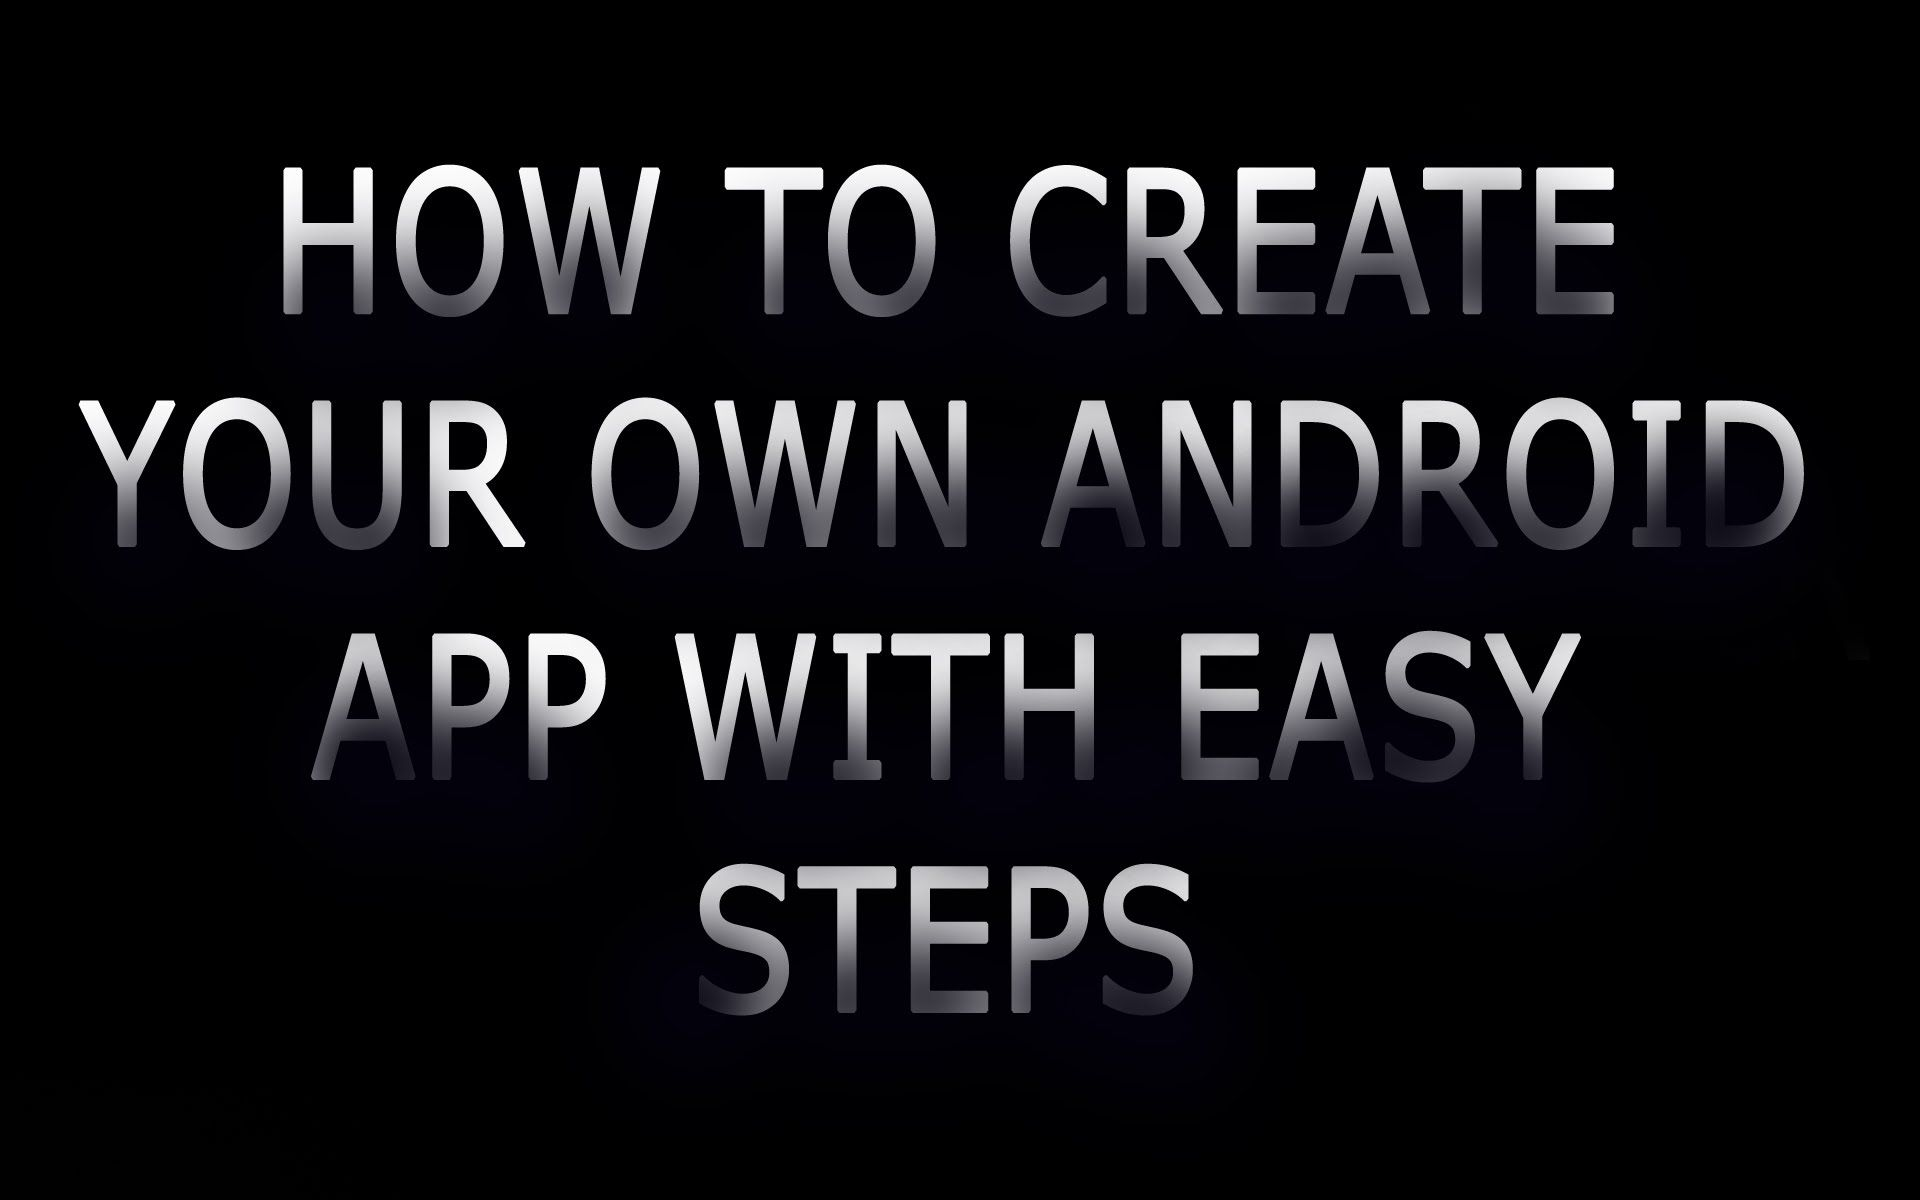 cool HOW TO CREATE YOUR OWN ANDROID APP WITH SIMPLE STEPS